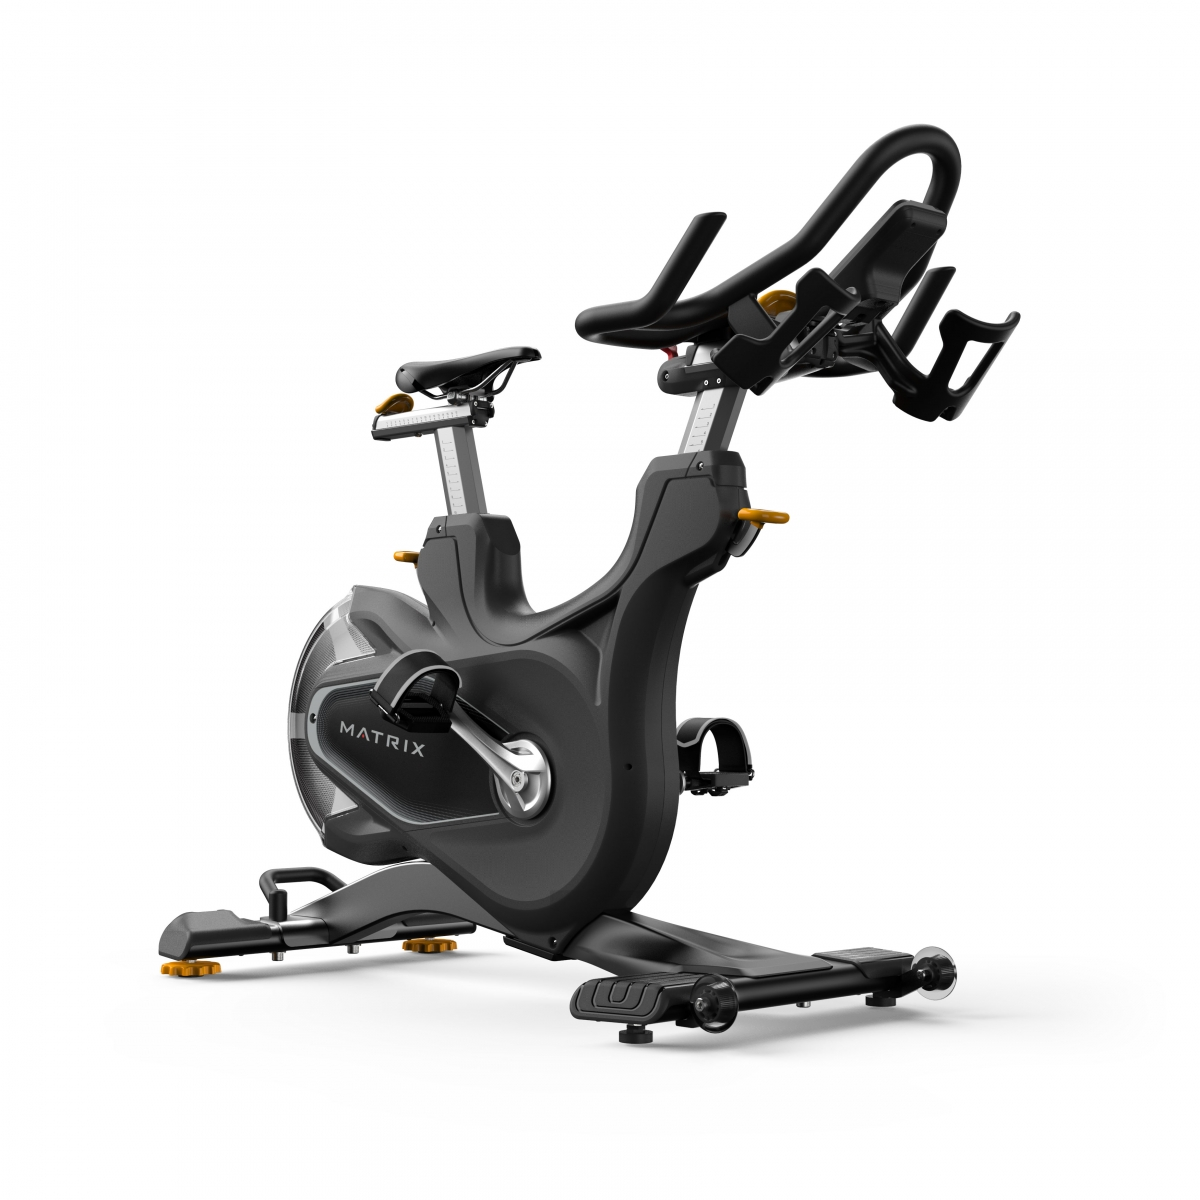 cxp matrix matrix fitness indoor bike spinningcykel